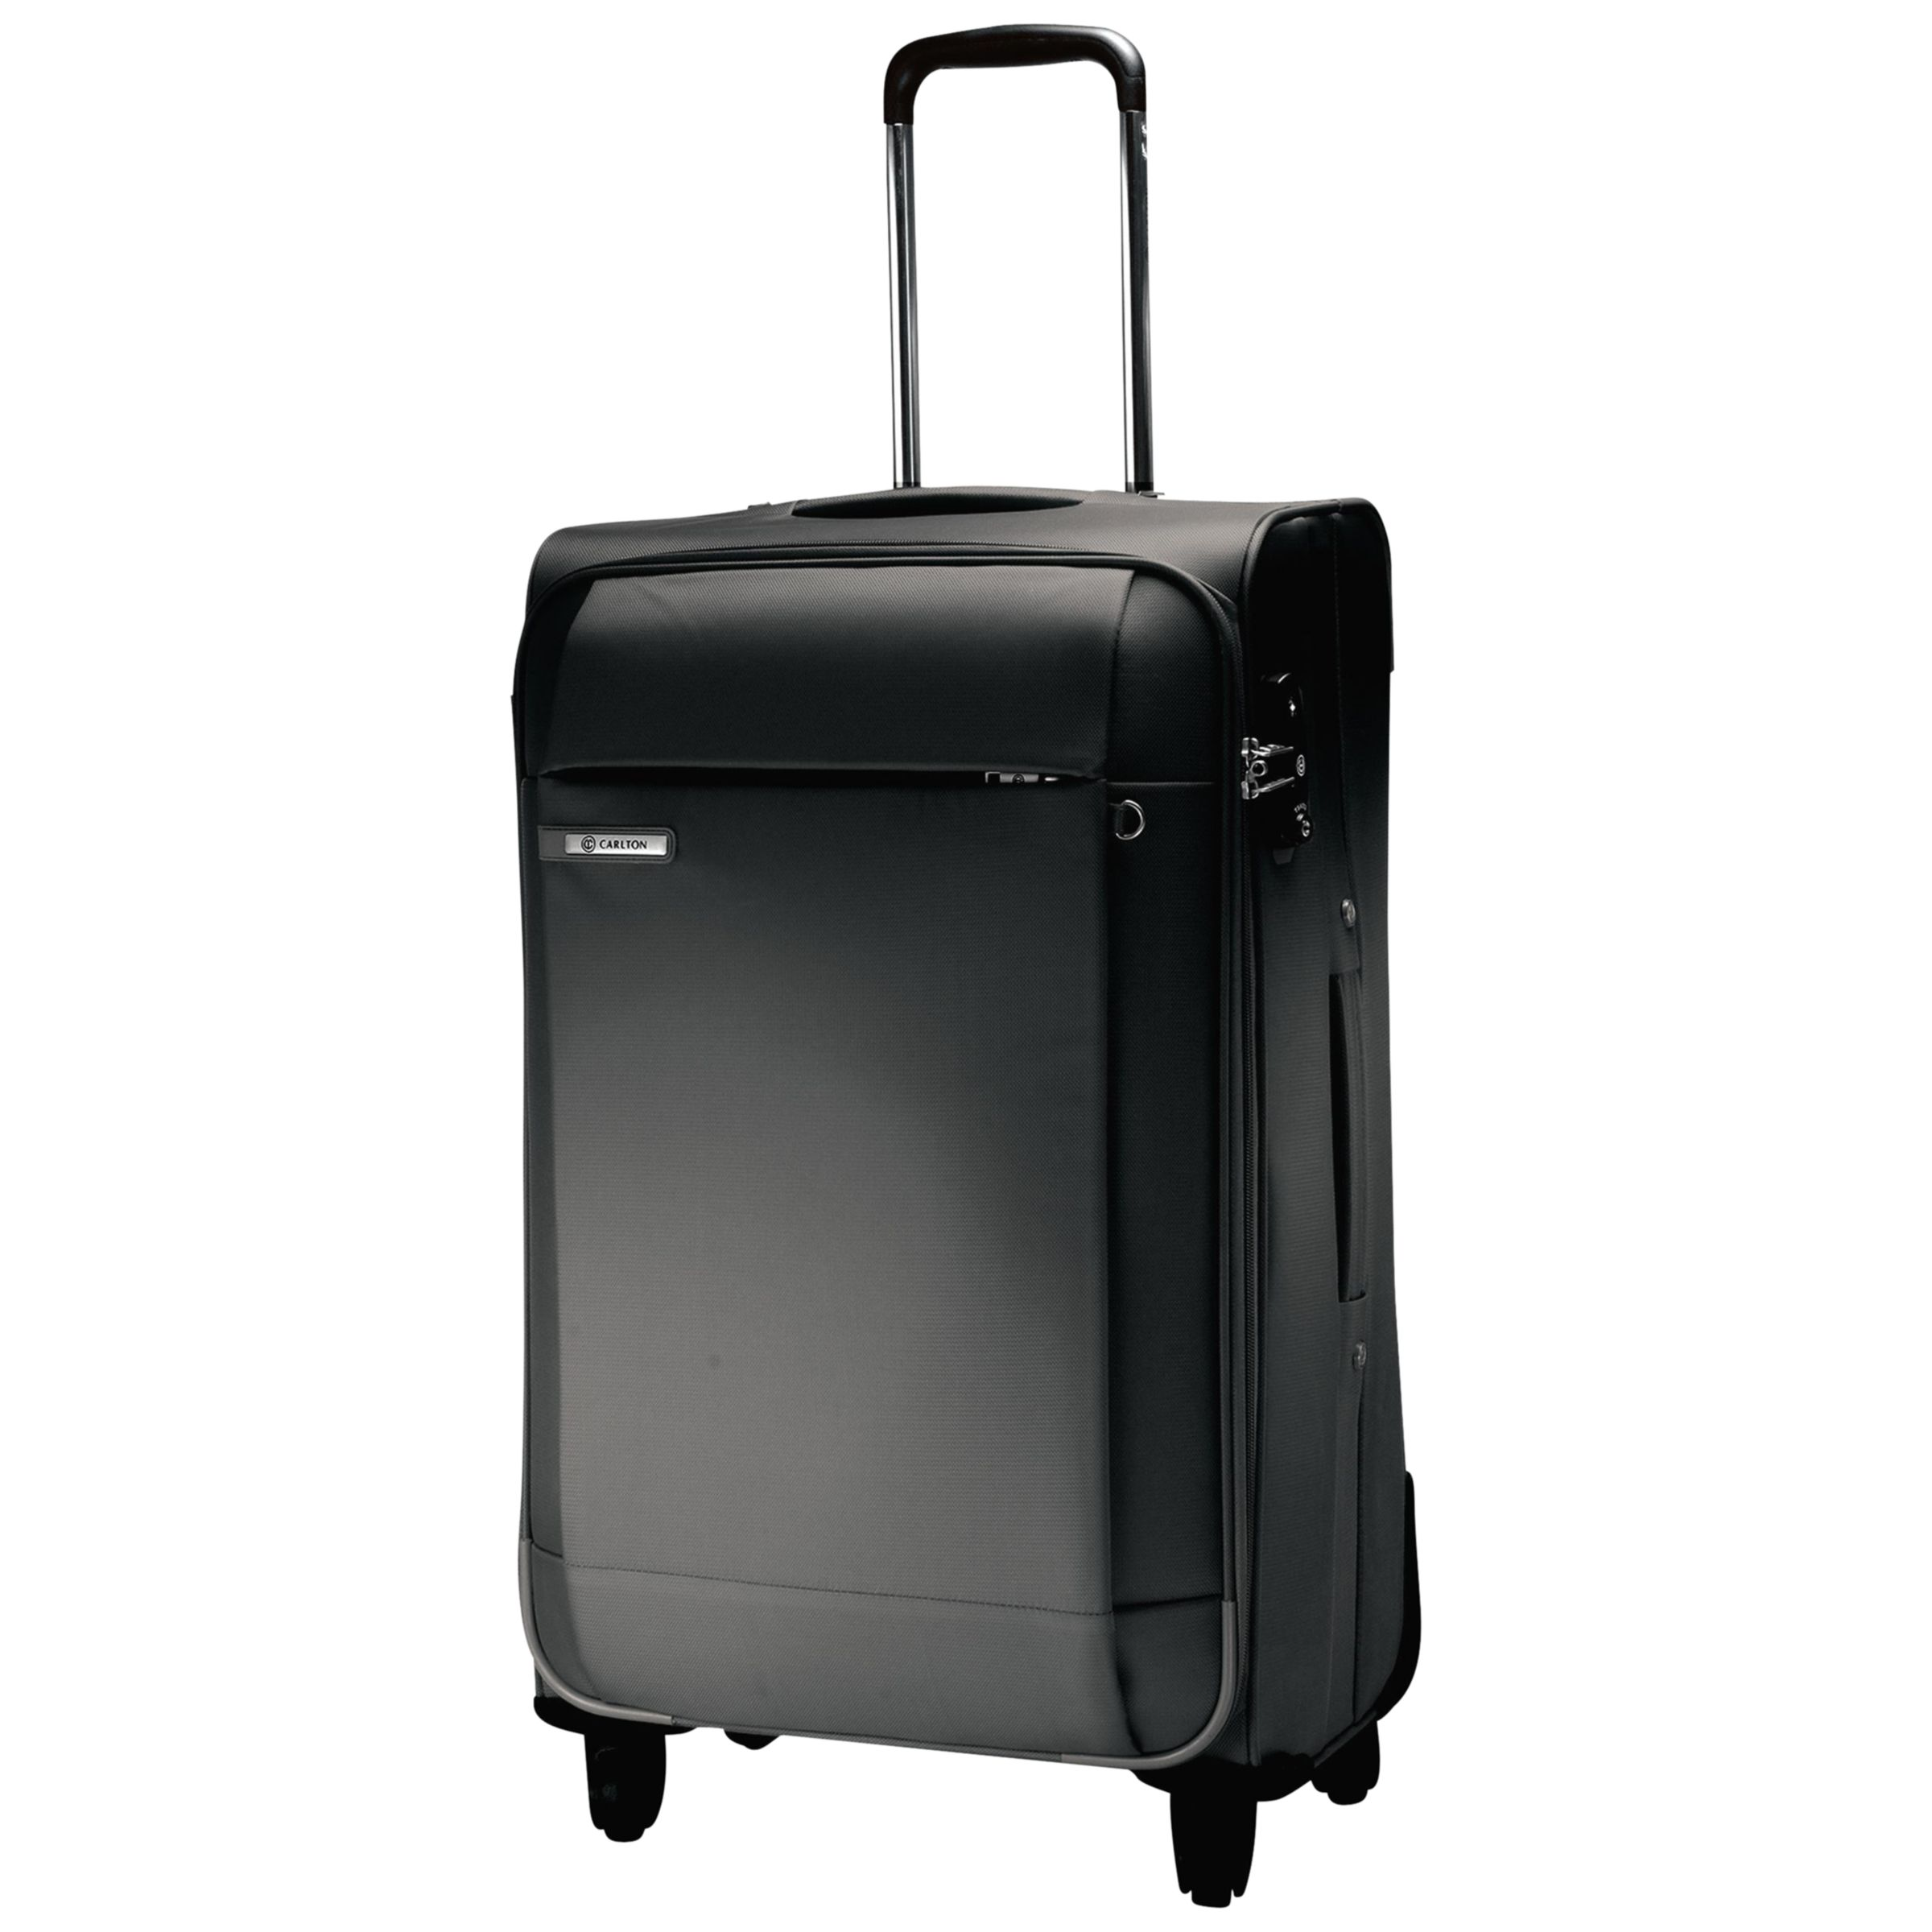 Carlton Titanium Spinner Suitcase, Black